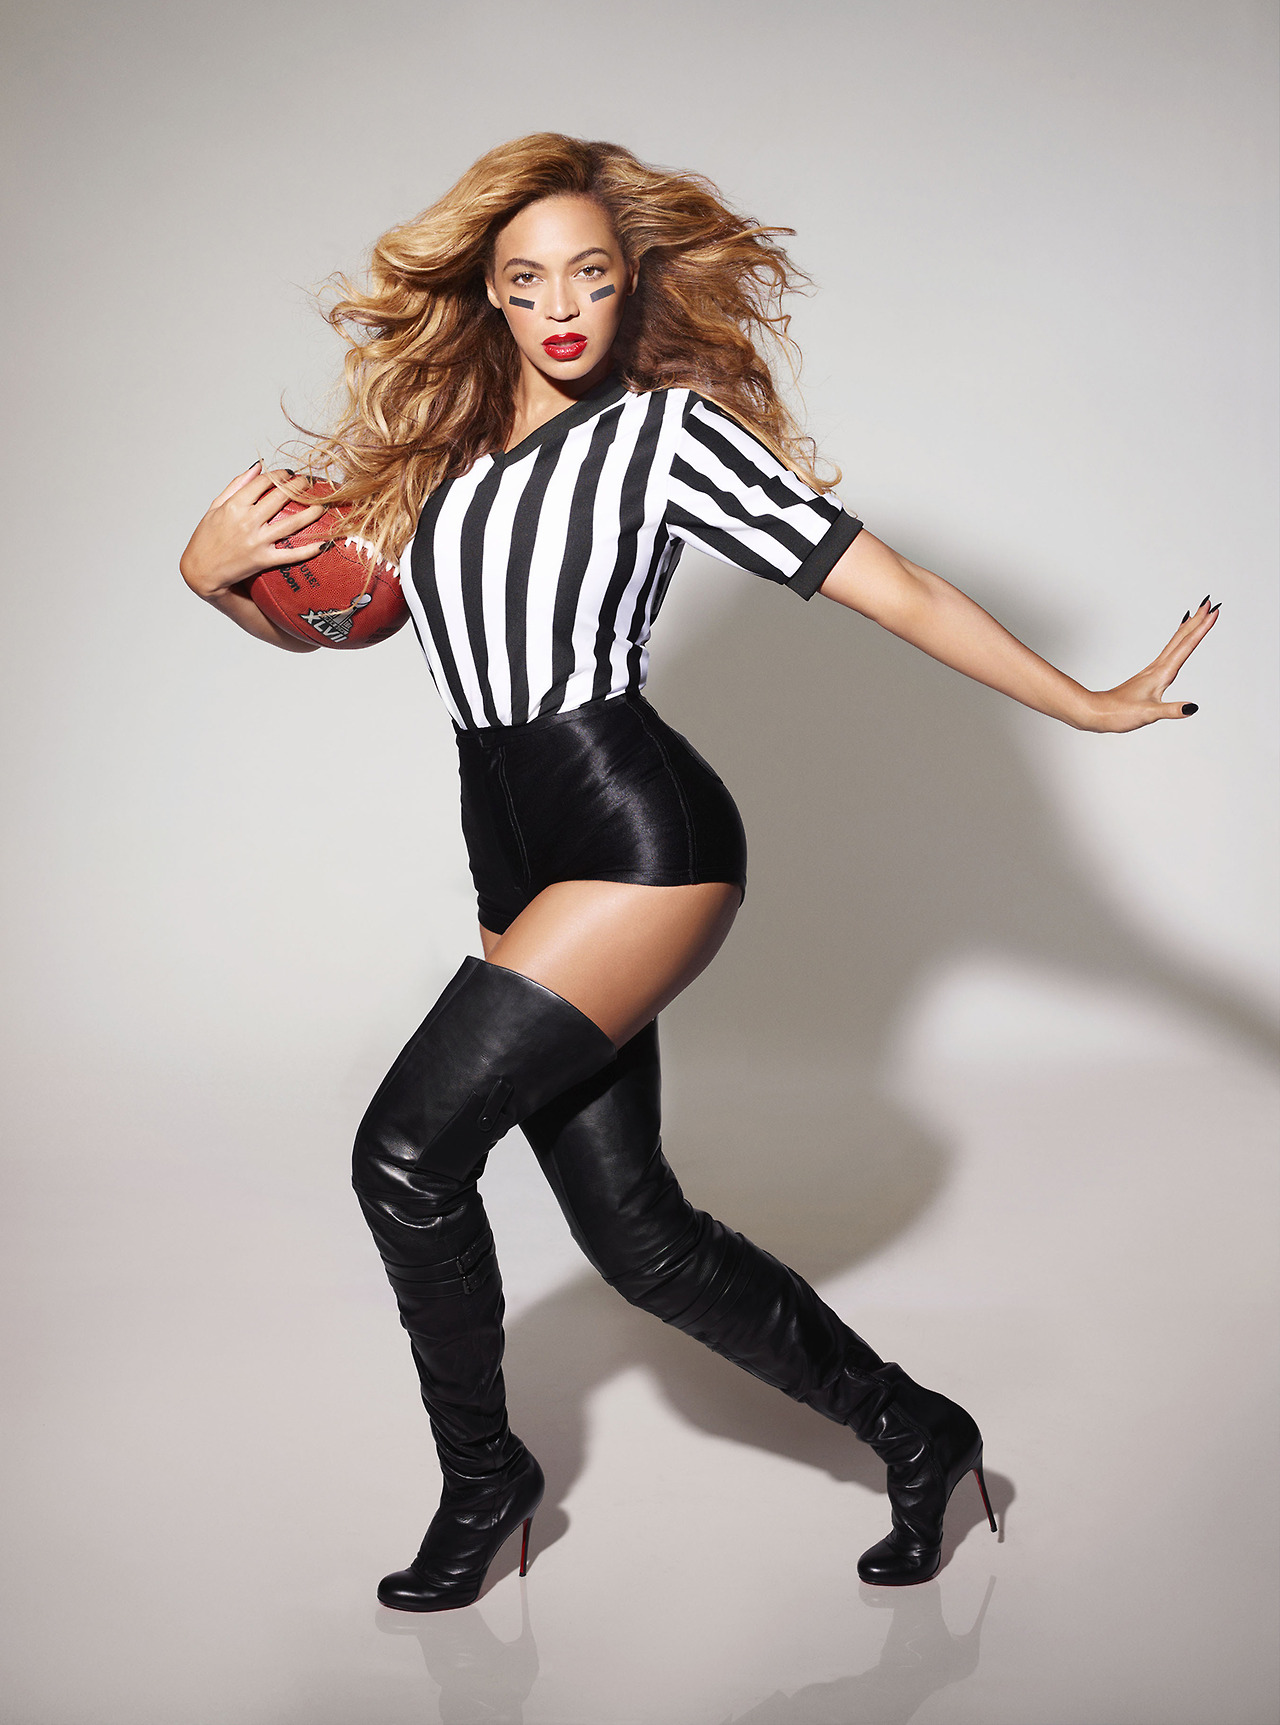 beyonce and pepsi at the super bowl